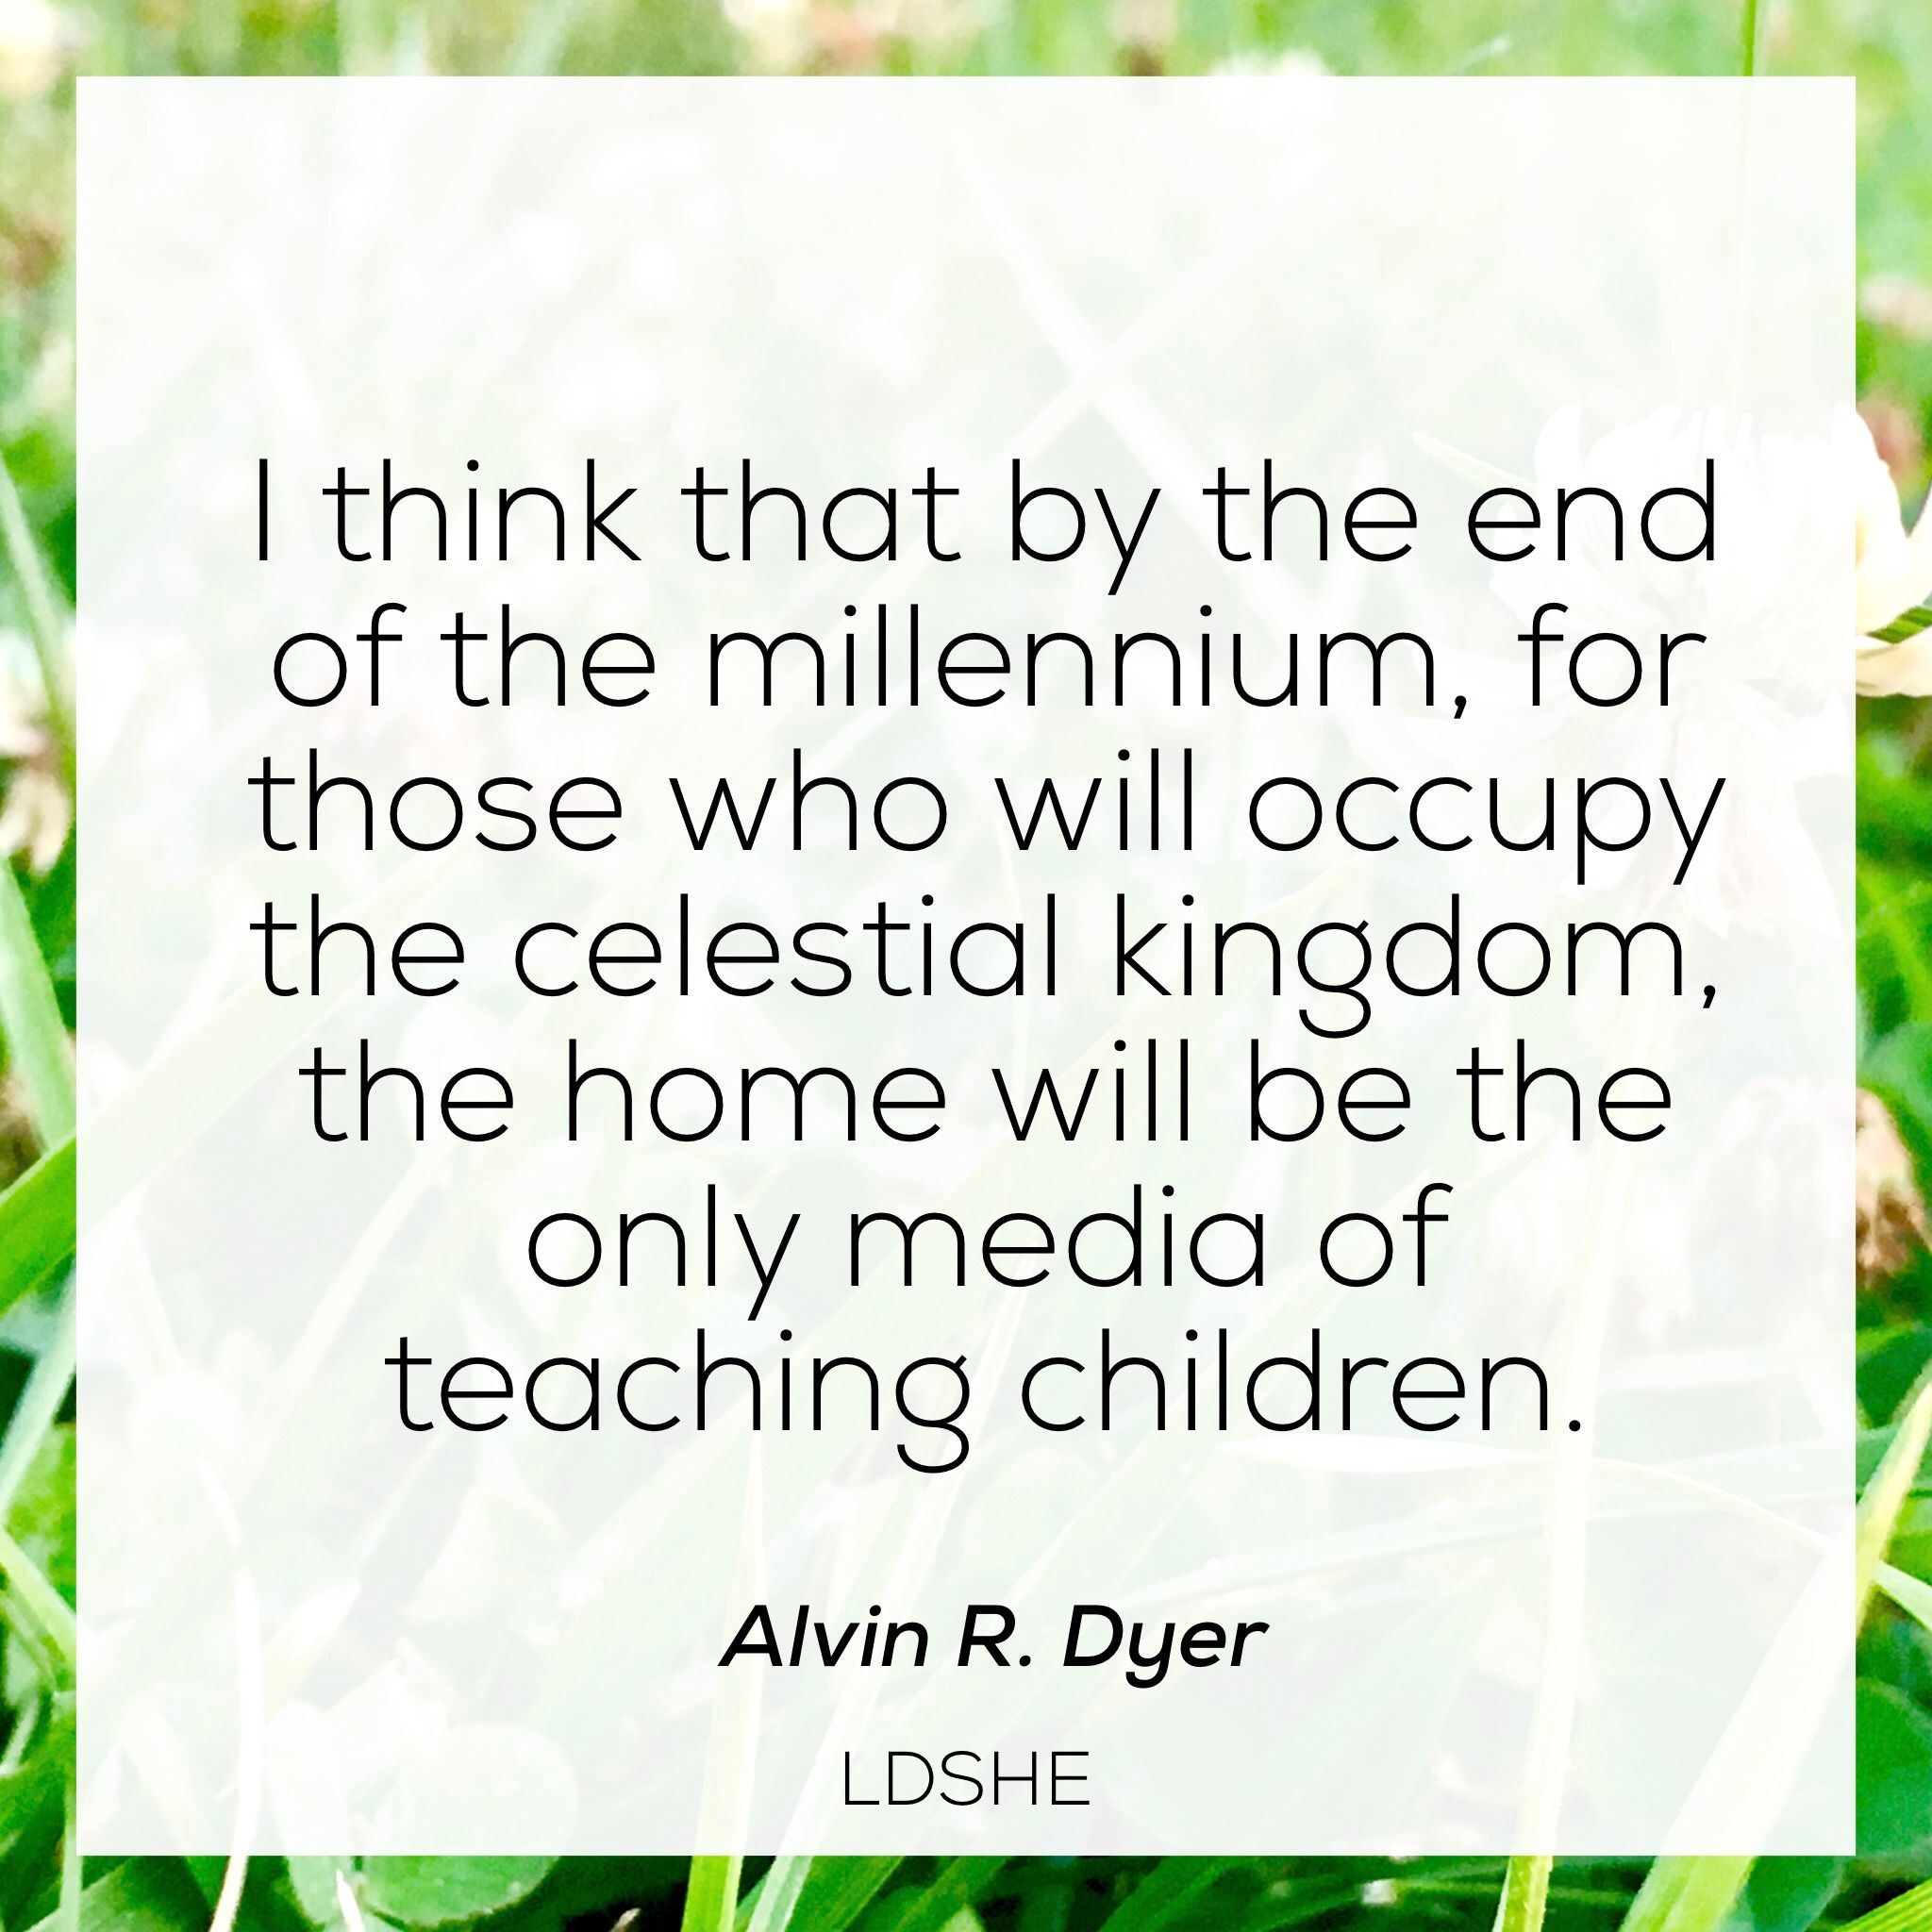 Quotes About Teaching Children Alvin Rdyer Teaching Children Quote  Education Quotes